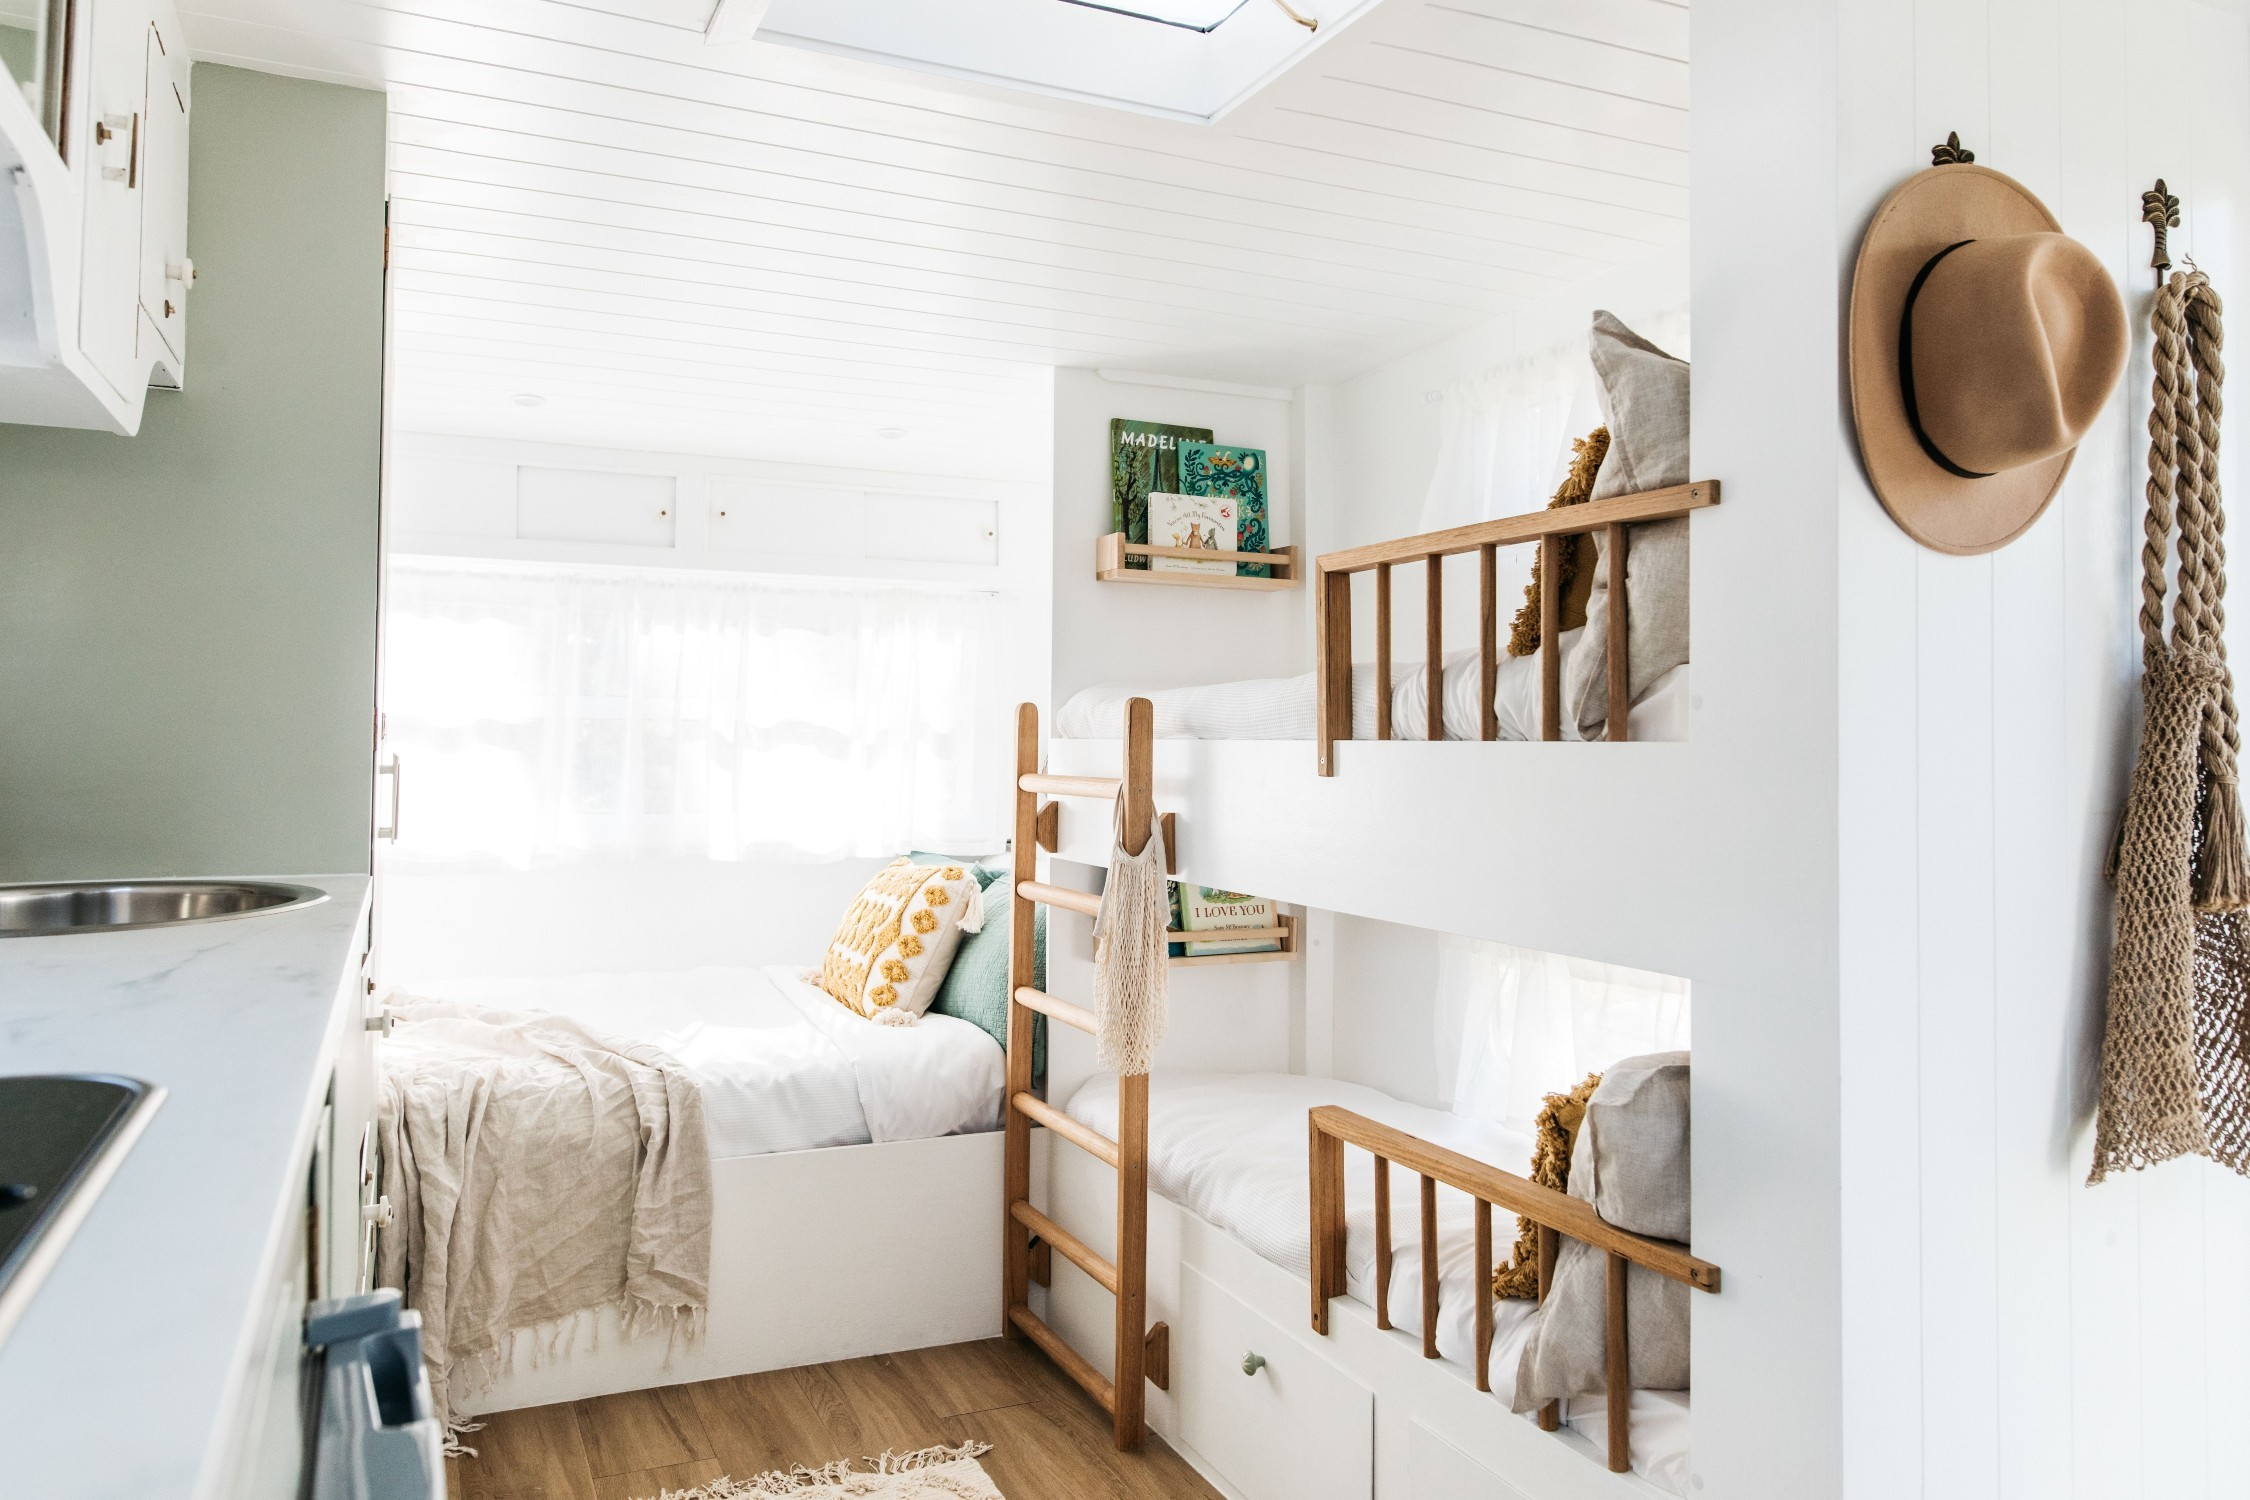 Interior of caravan with stylish interiors and bunk beds